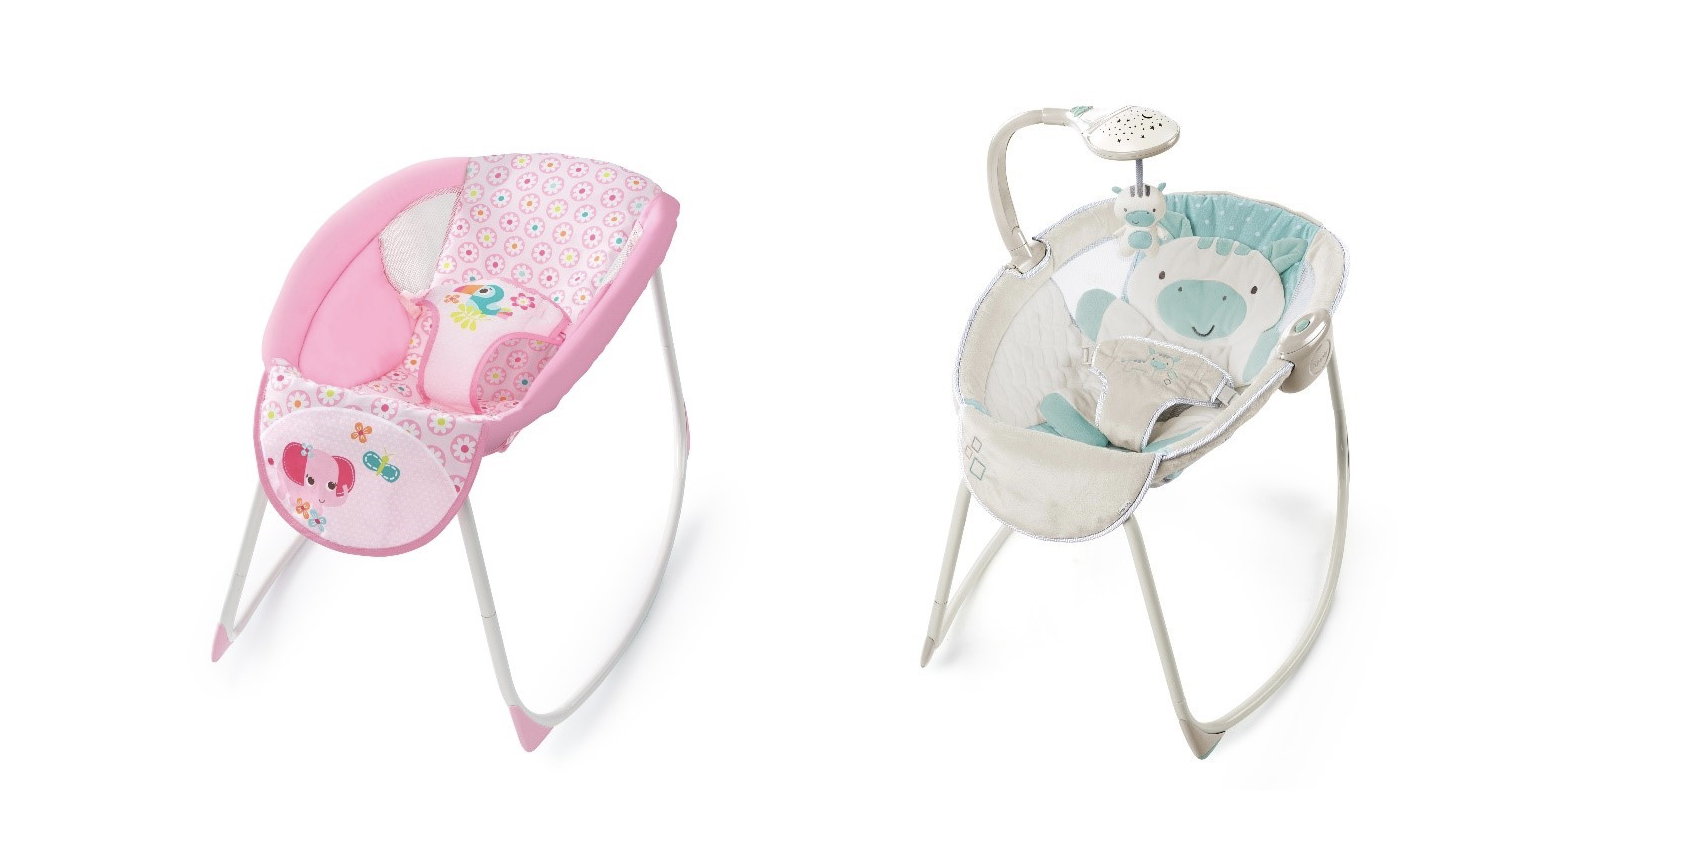 Infant Sleepers Recalled Due to Reports of Deaths